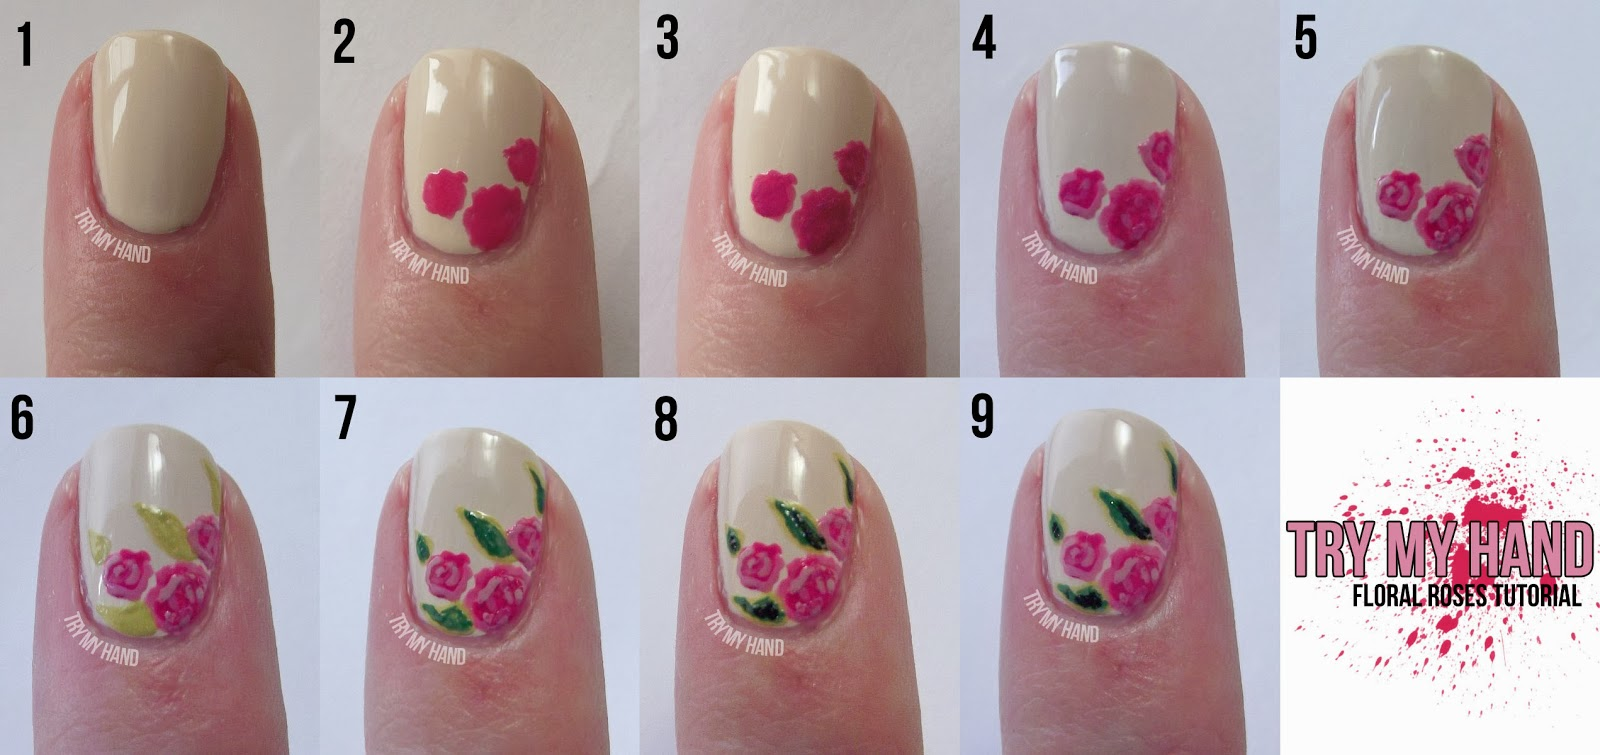 nail-art-designs-step-by-step - Polished Pathology